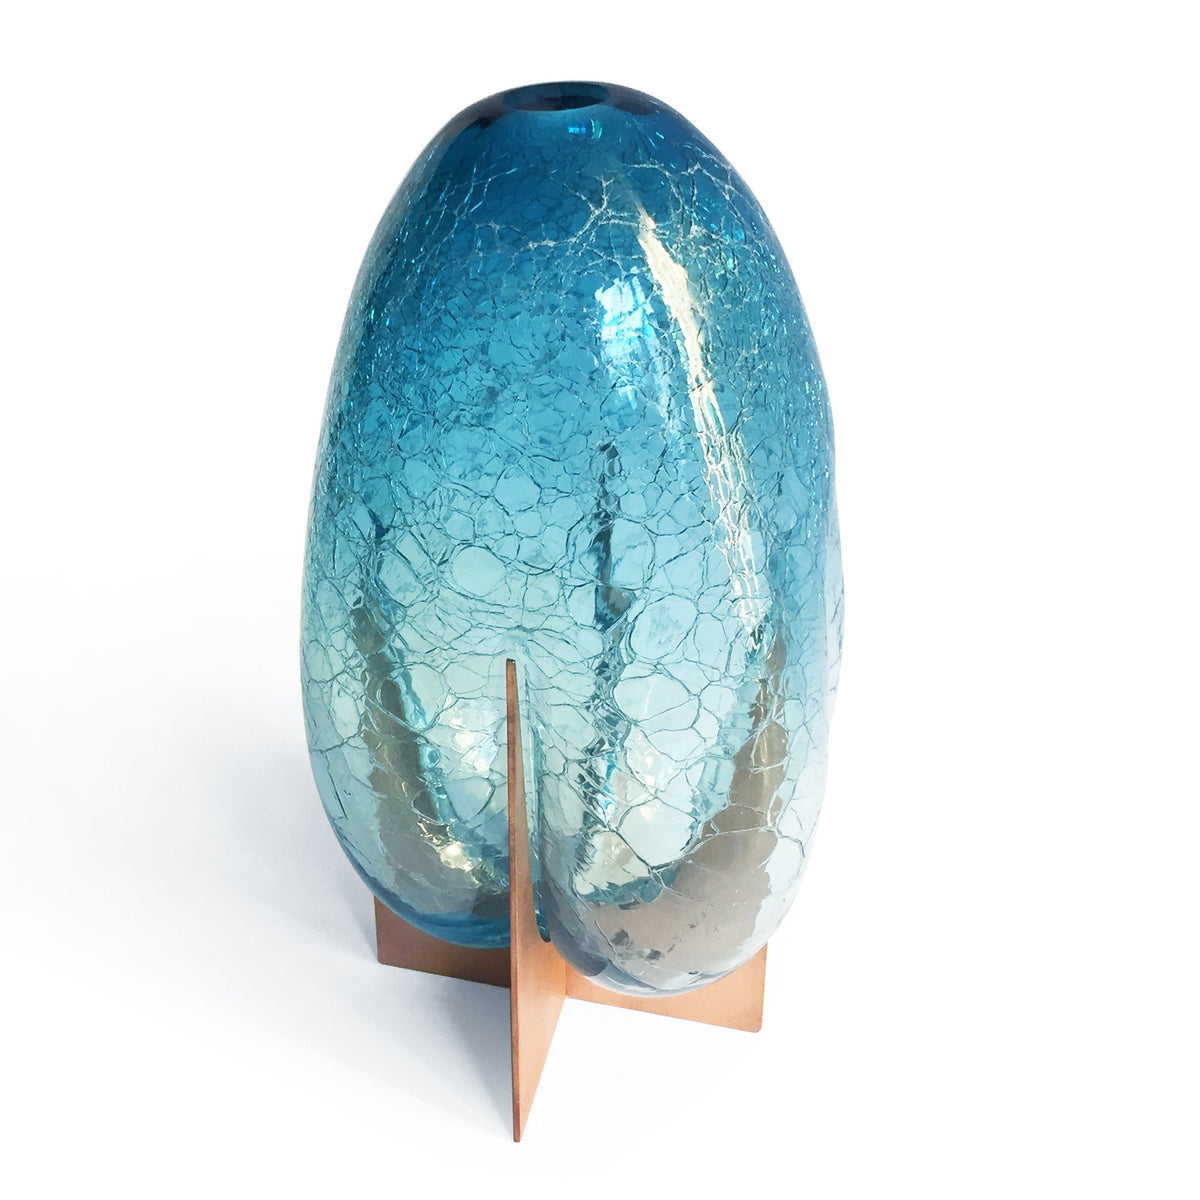 VENTURI PEAR VASE - BLUE CRACKLE